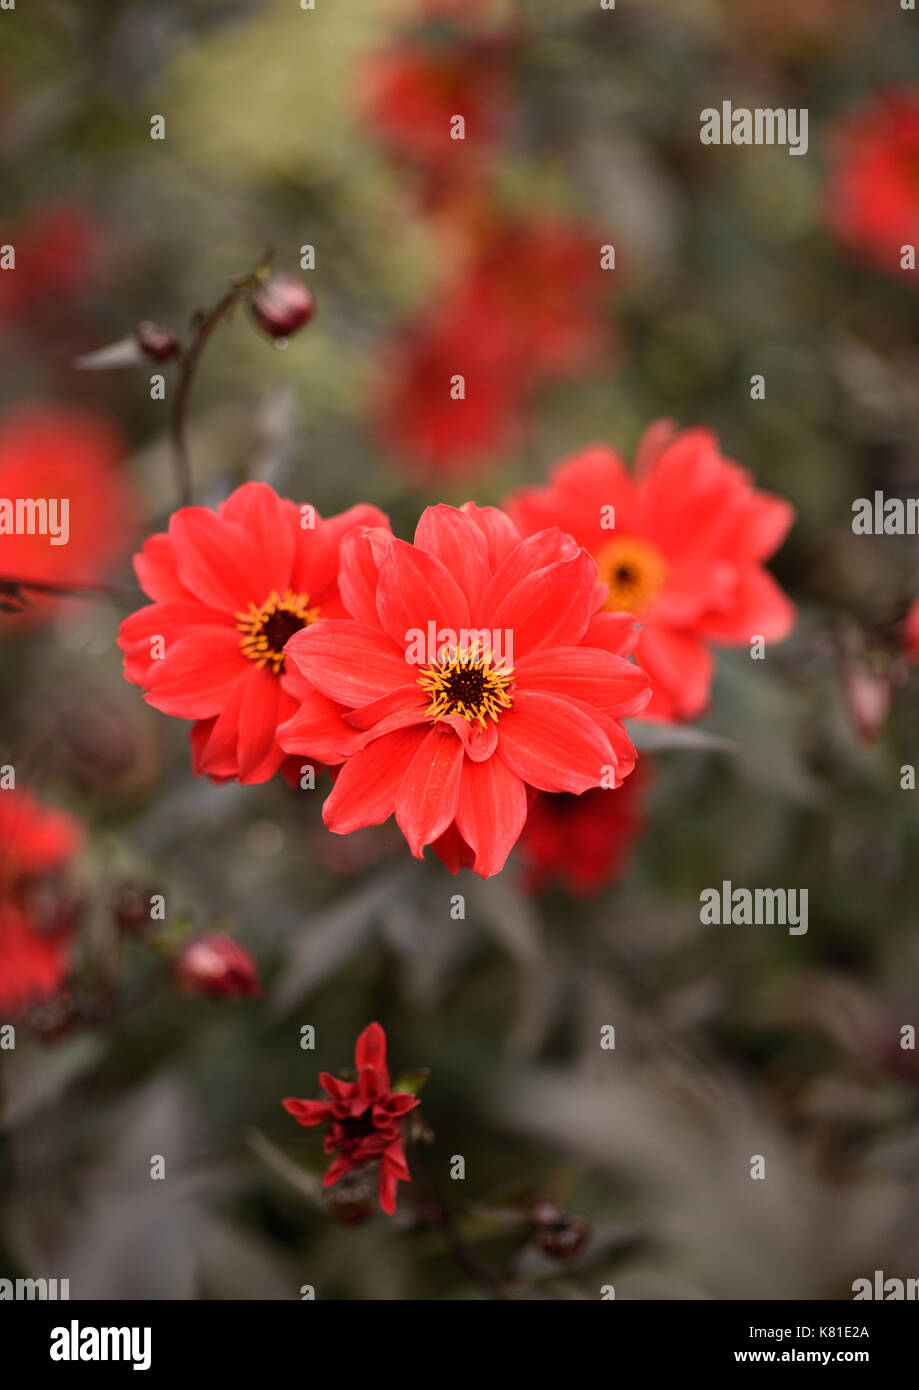 Red flowers with out of focus background - Stock Image